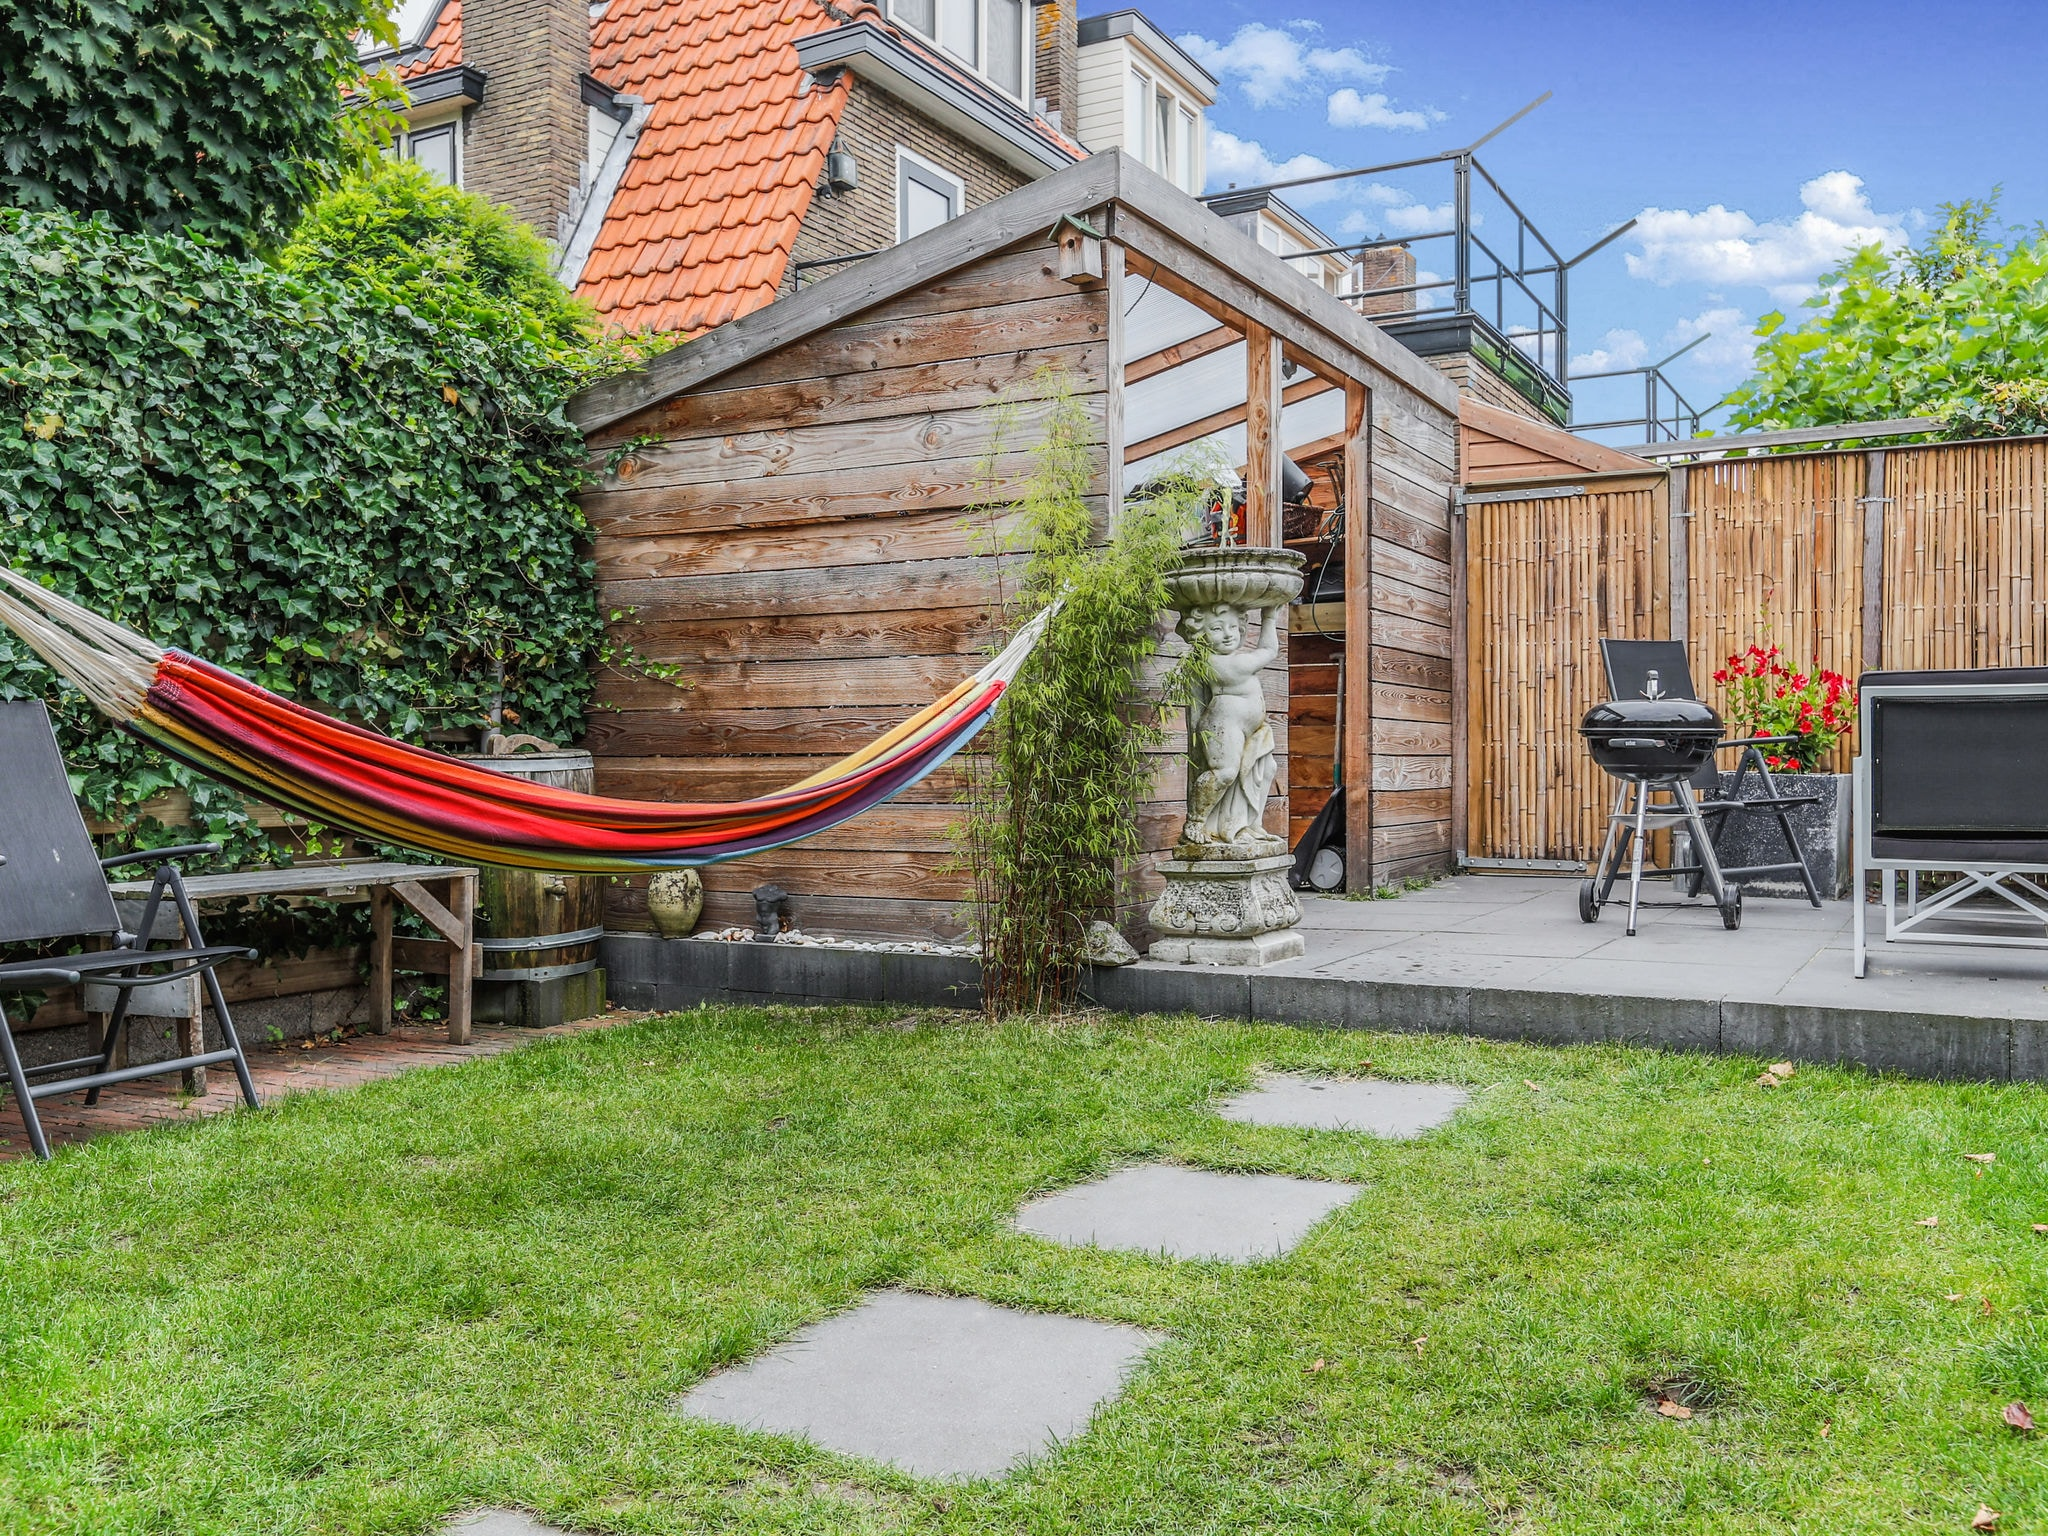 Holland | Utrecht | Holiday home Amersfoortse Zon | Holidays | GardenSummer